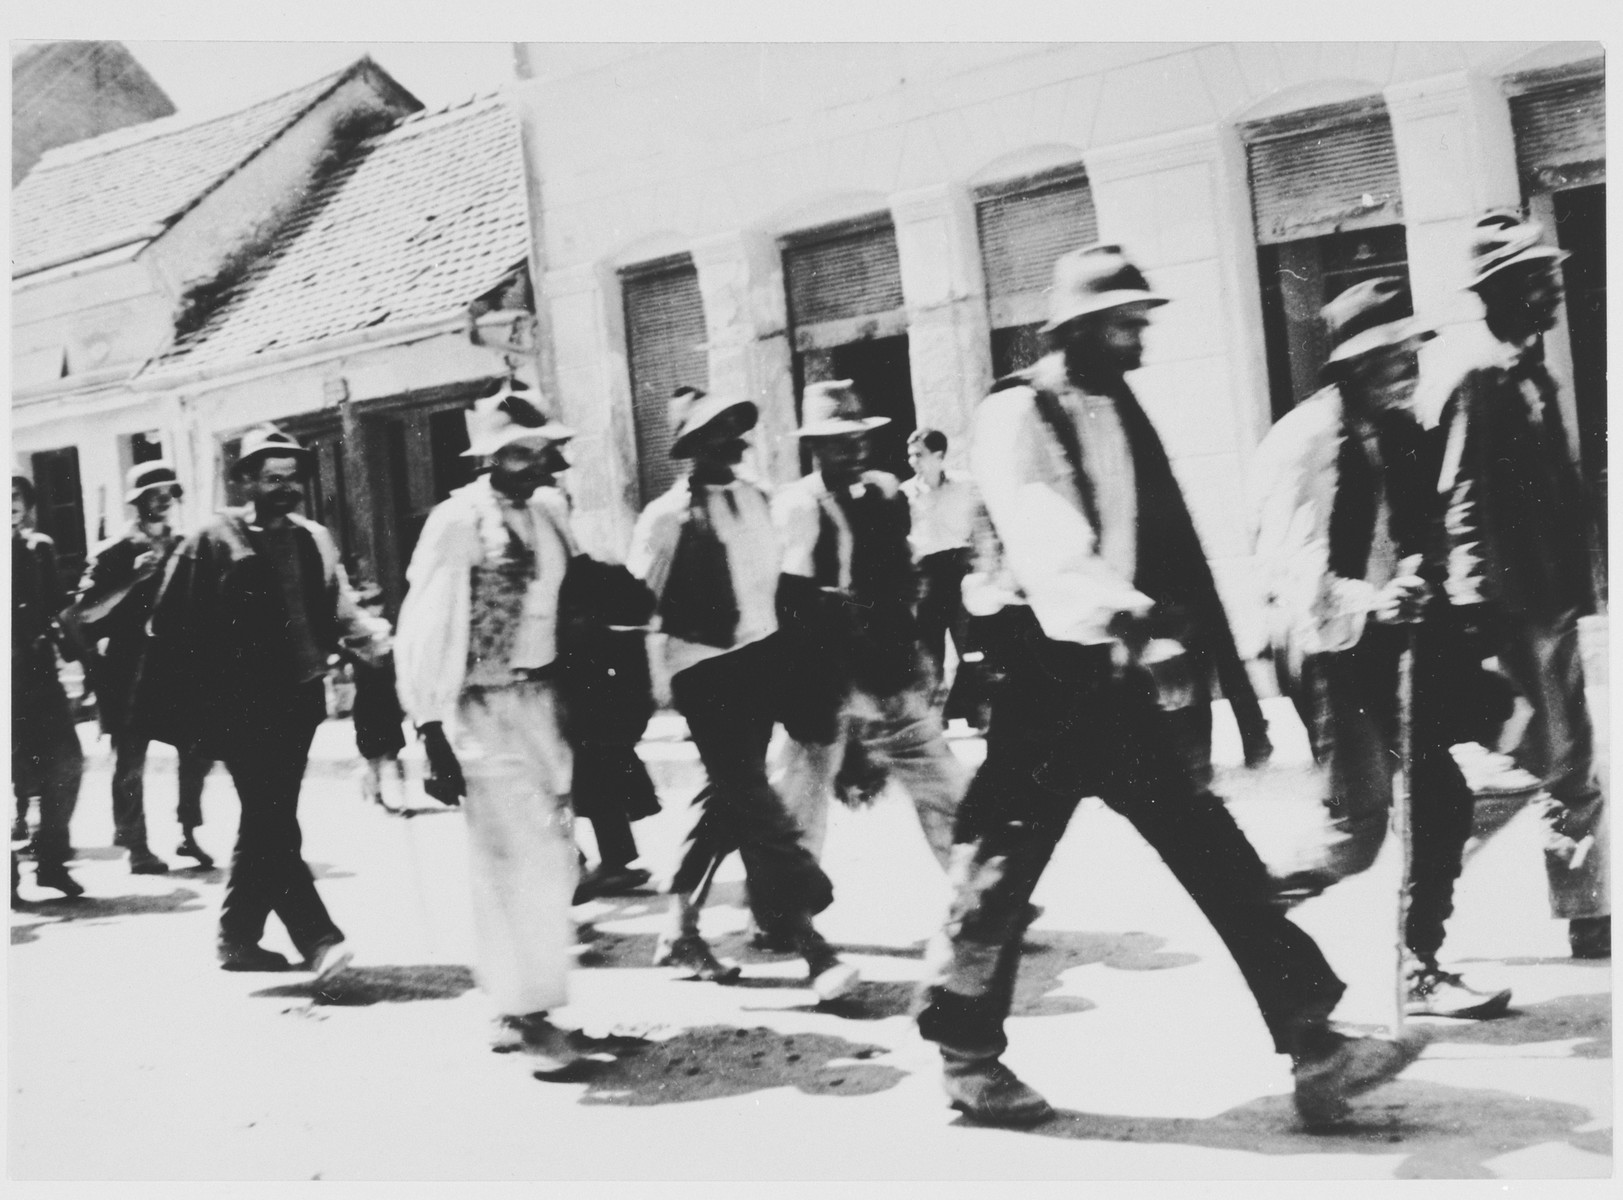 A group of men who have been rounded up for deportation, are marched out of town.